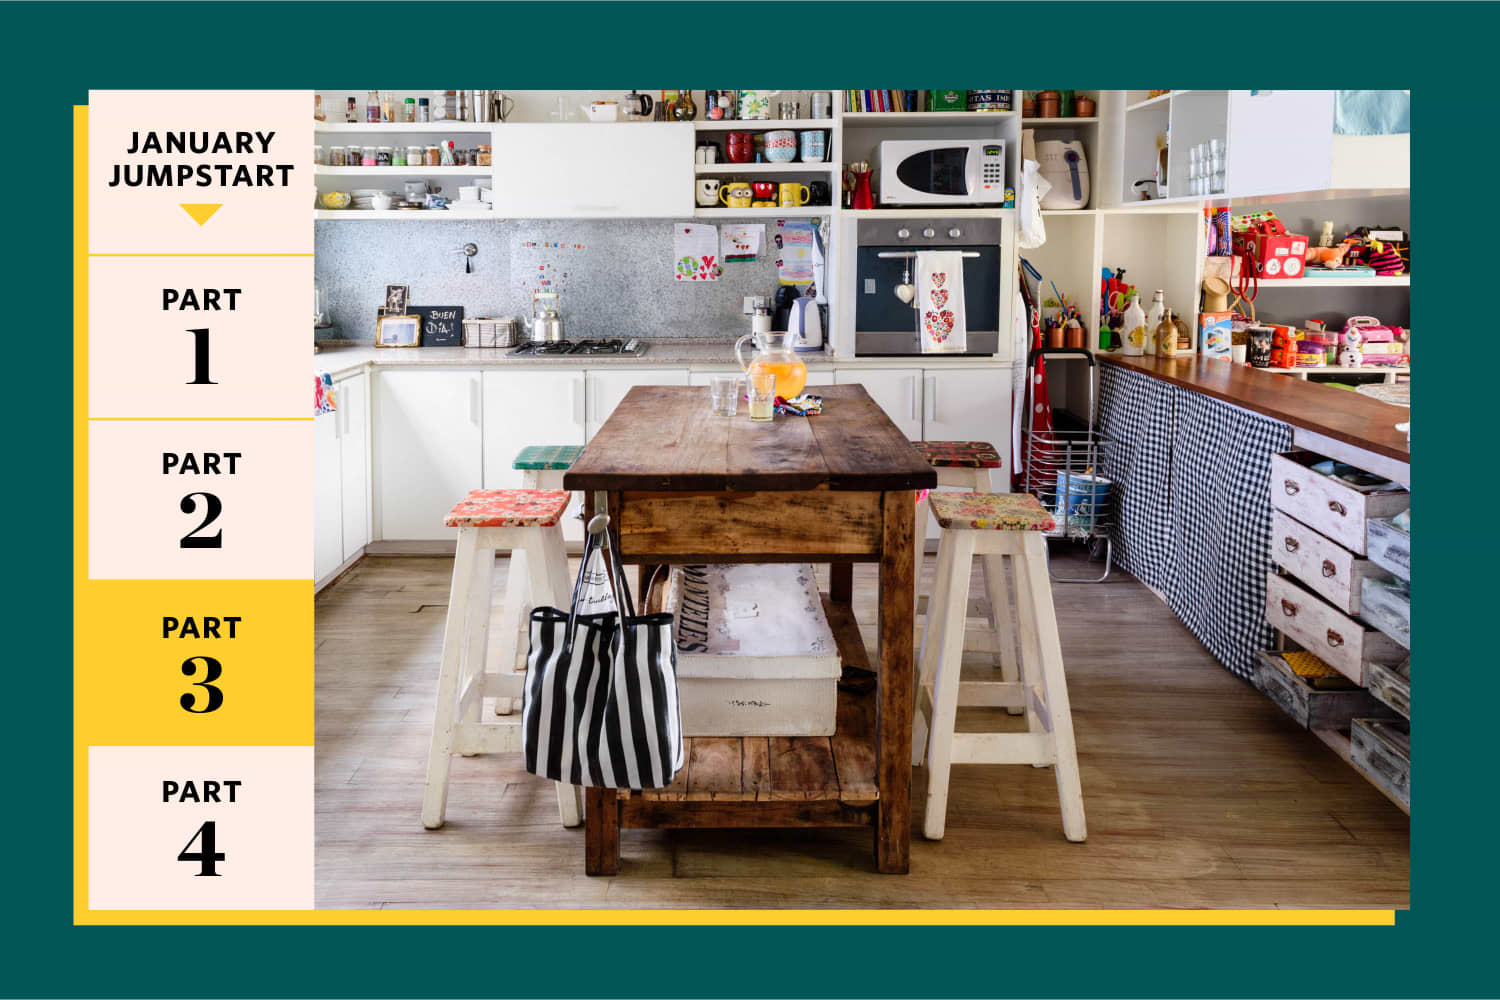 How to Use 2020 to Make Your Kitchen Better in 2021